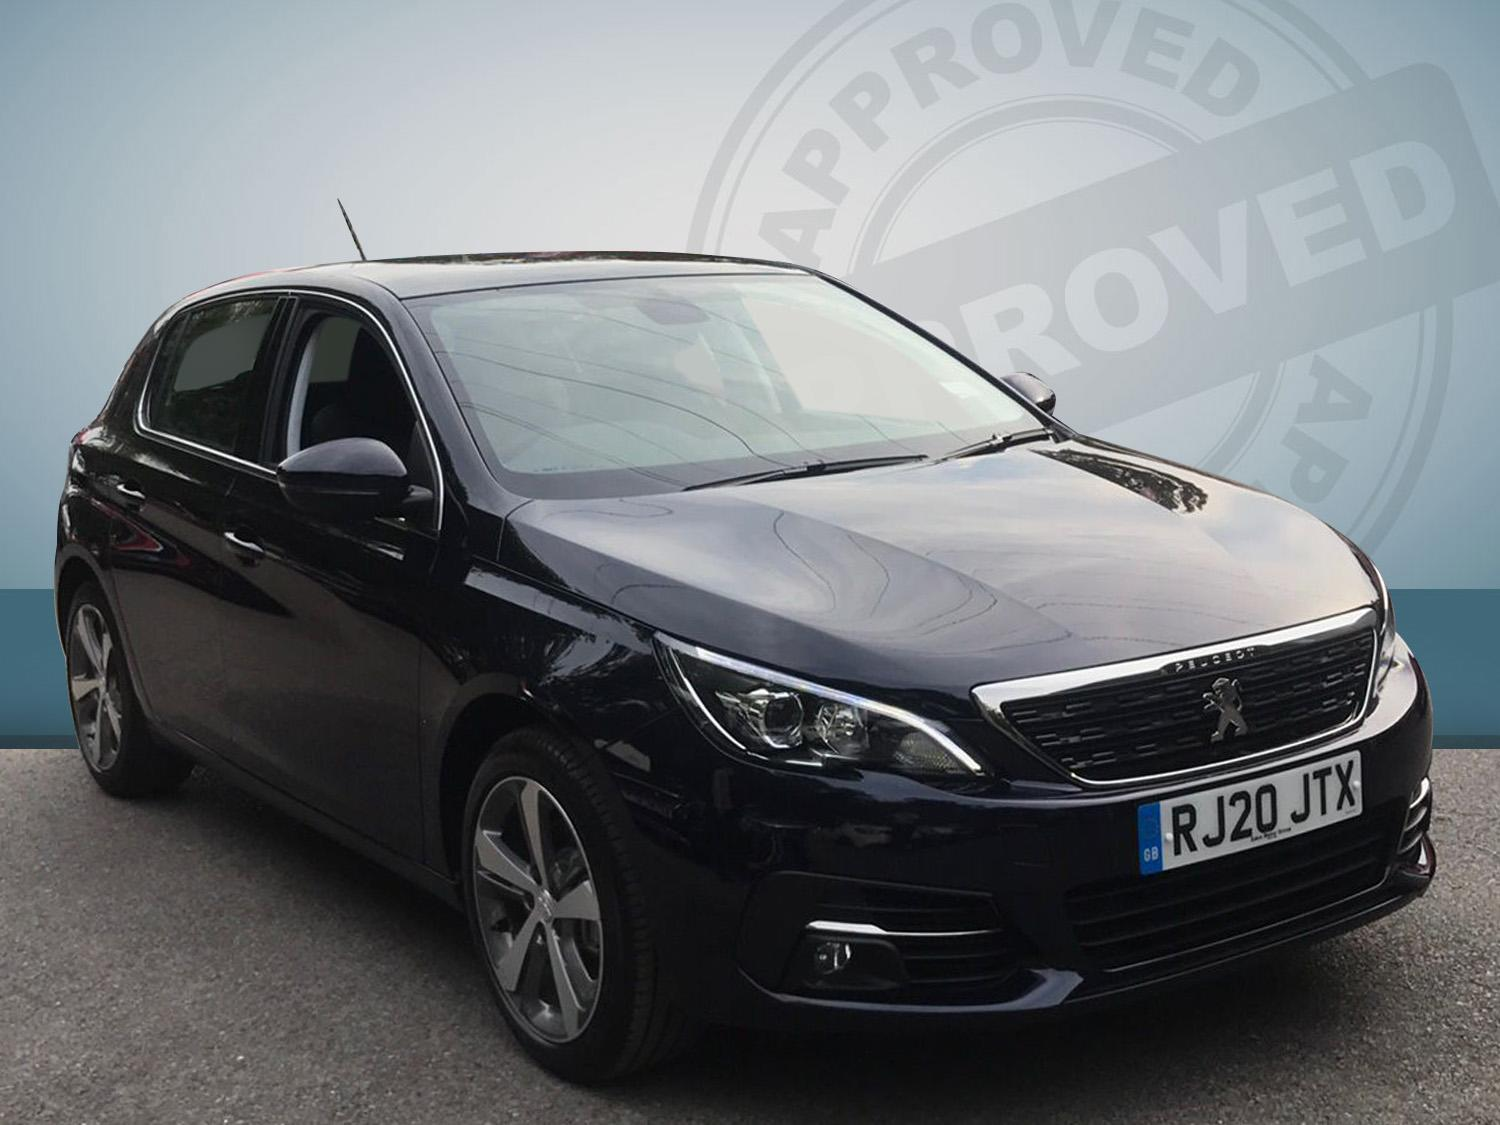 Peugeot 308 1.2 PureTech 130 Allure 5dr EAT8 Hatchback Petrol Black